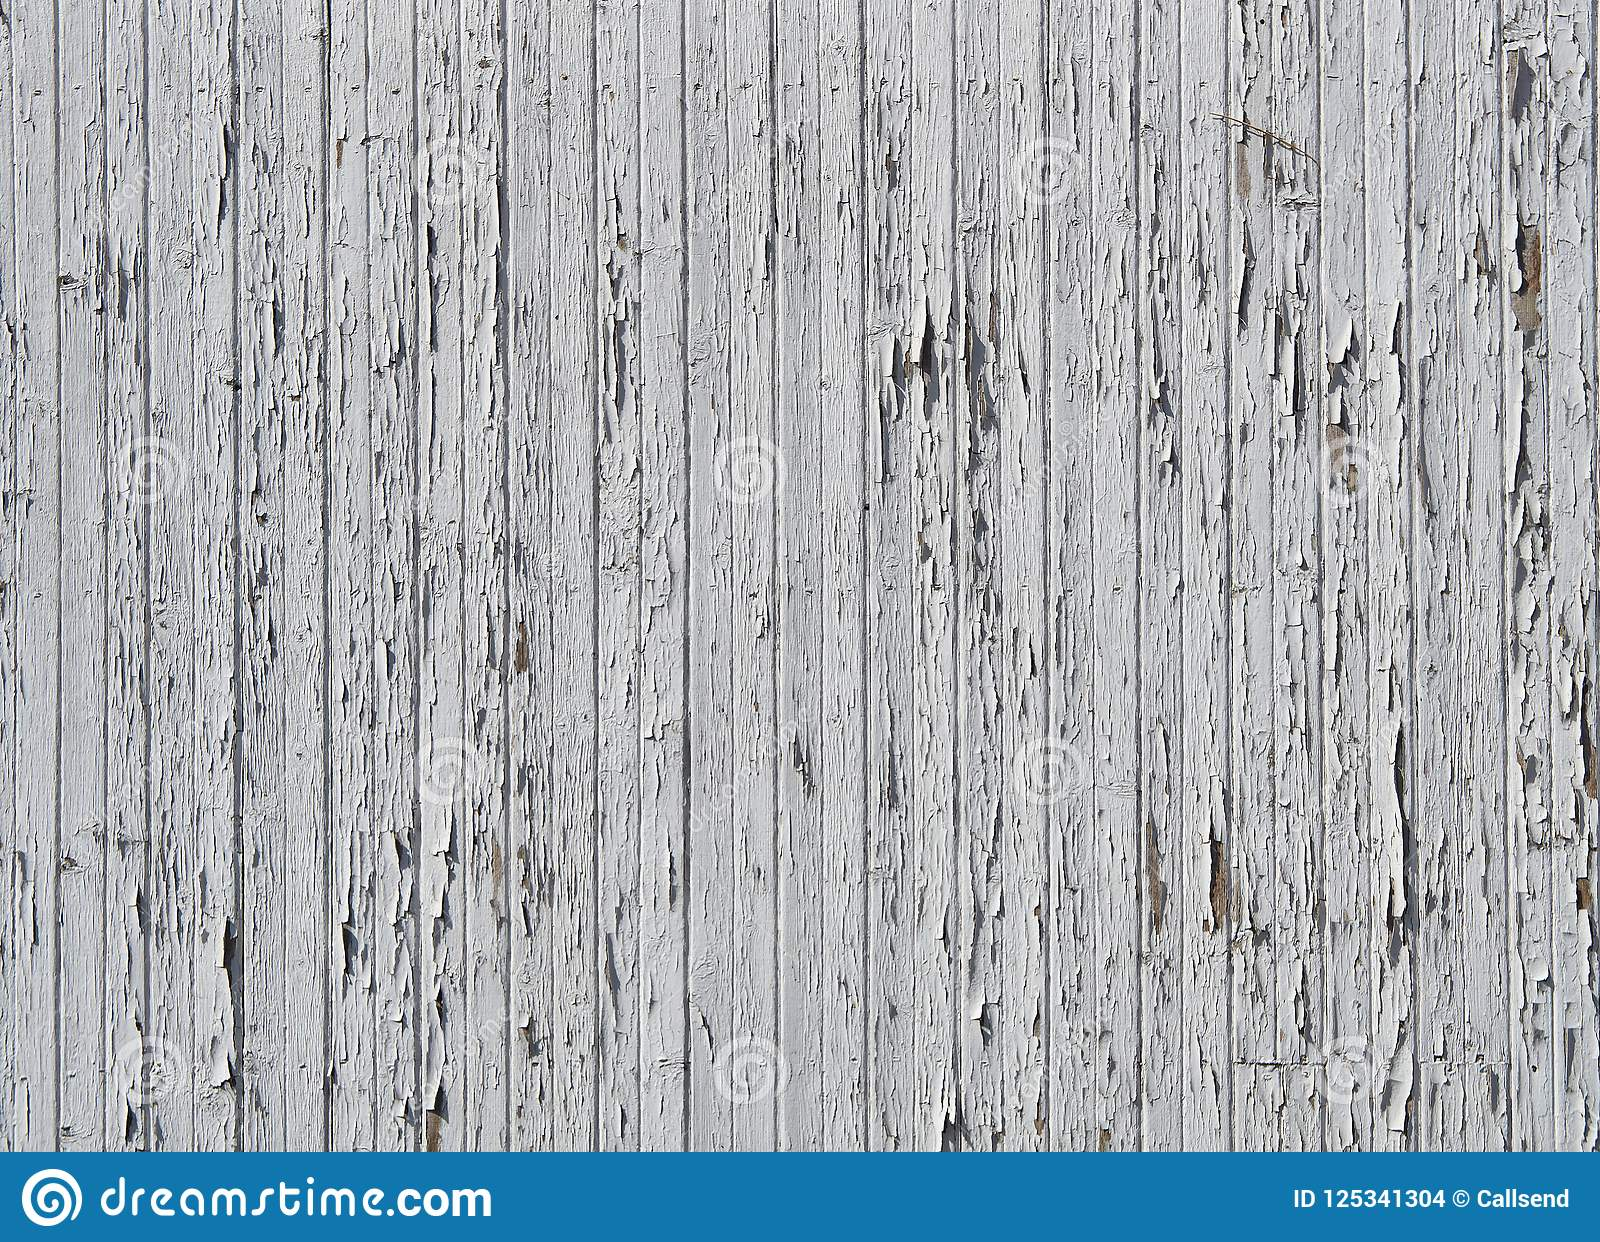 Vintage White Wood Texture With Natural Patterns As Background